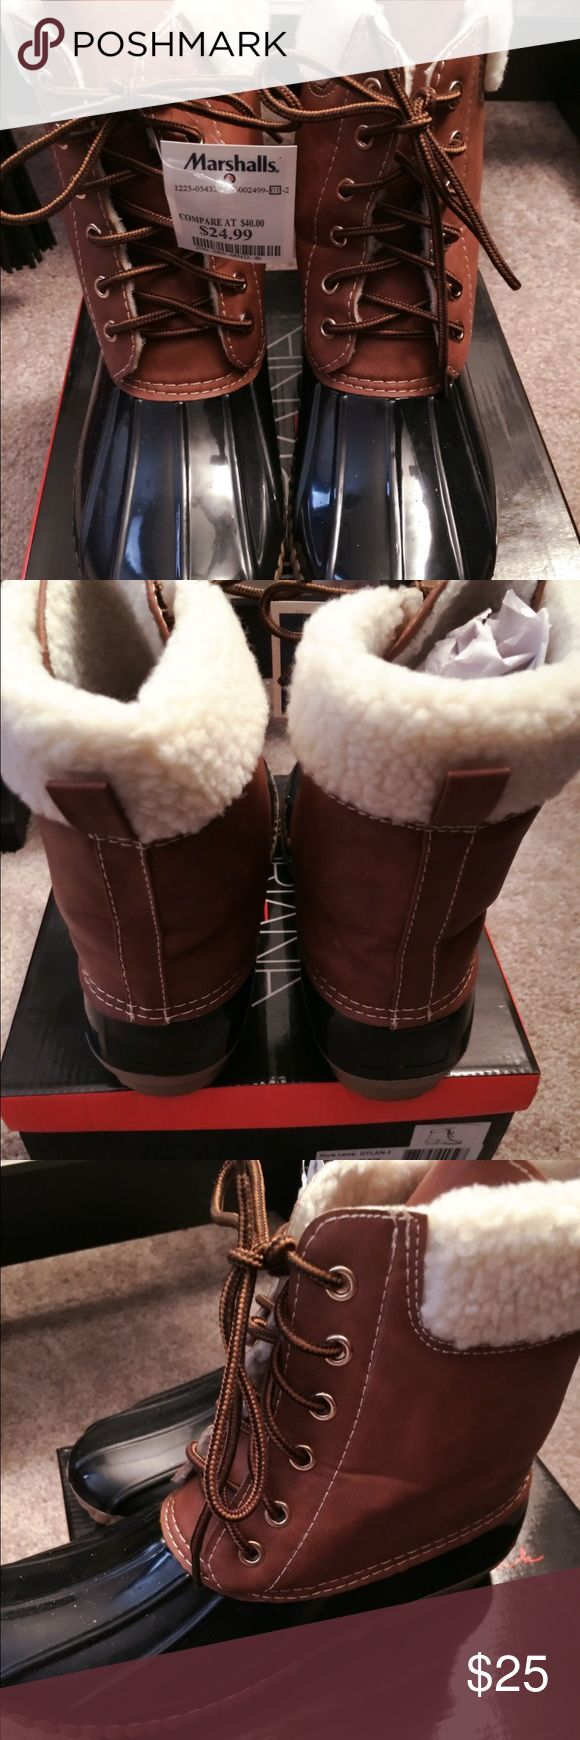 New Original Duck Boots with Sherpa Trim New with Tags. Size 7.5. Purchased at Marshalls. Too big for me. Duck Boots. Sherpa/Fur collar. Great for the upcoming season. Made by Arianna New York. LL Bean for exposure. #boots #bootie #duckboot #llbean #sperry #timberland #nike #minnetonka #hunter #toryburch #nordstrom #eddiebauer L.L. Bean Shoes Ankle Boots & Booties